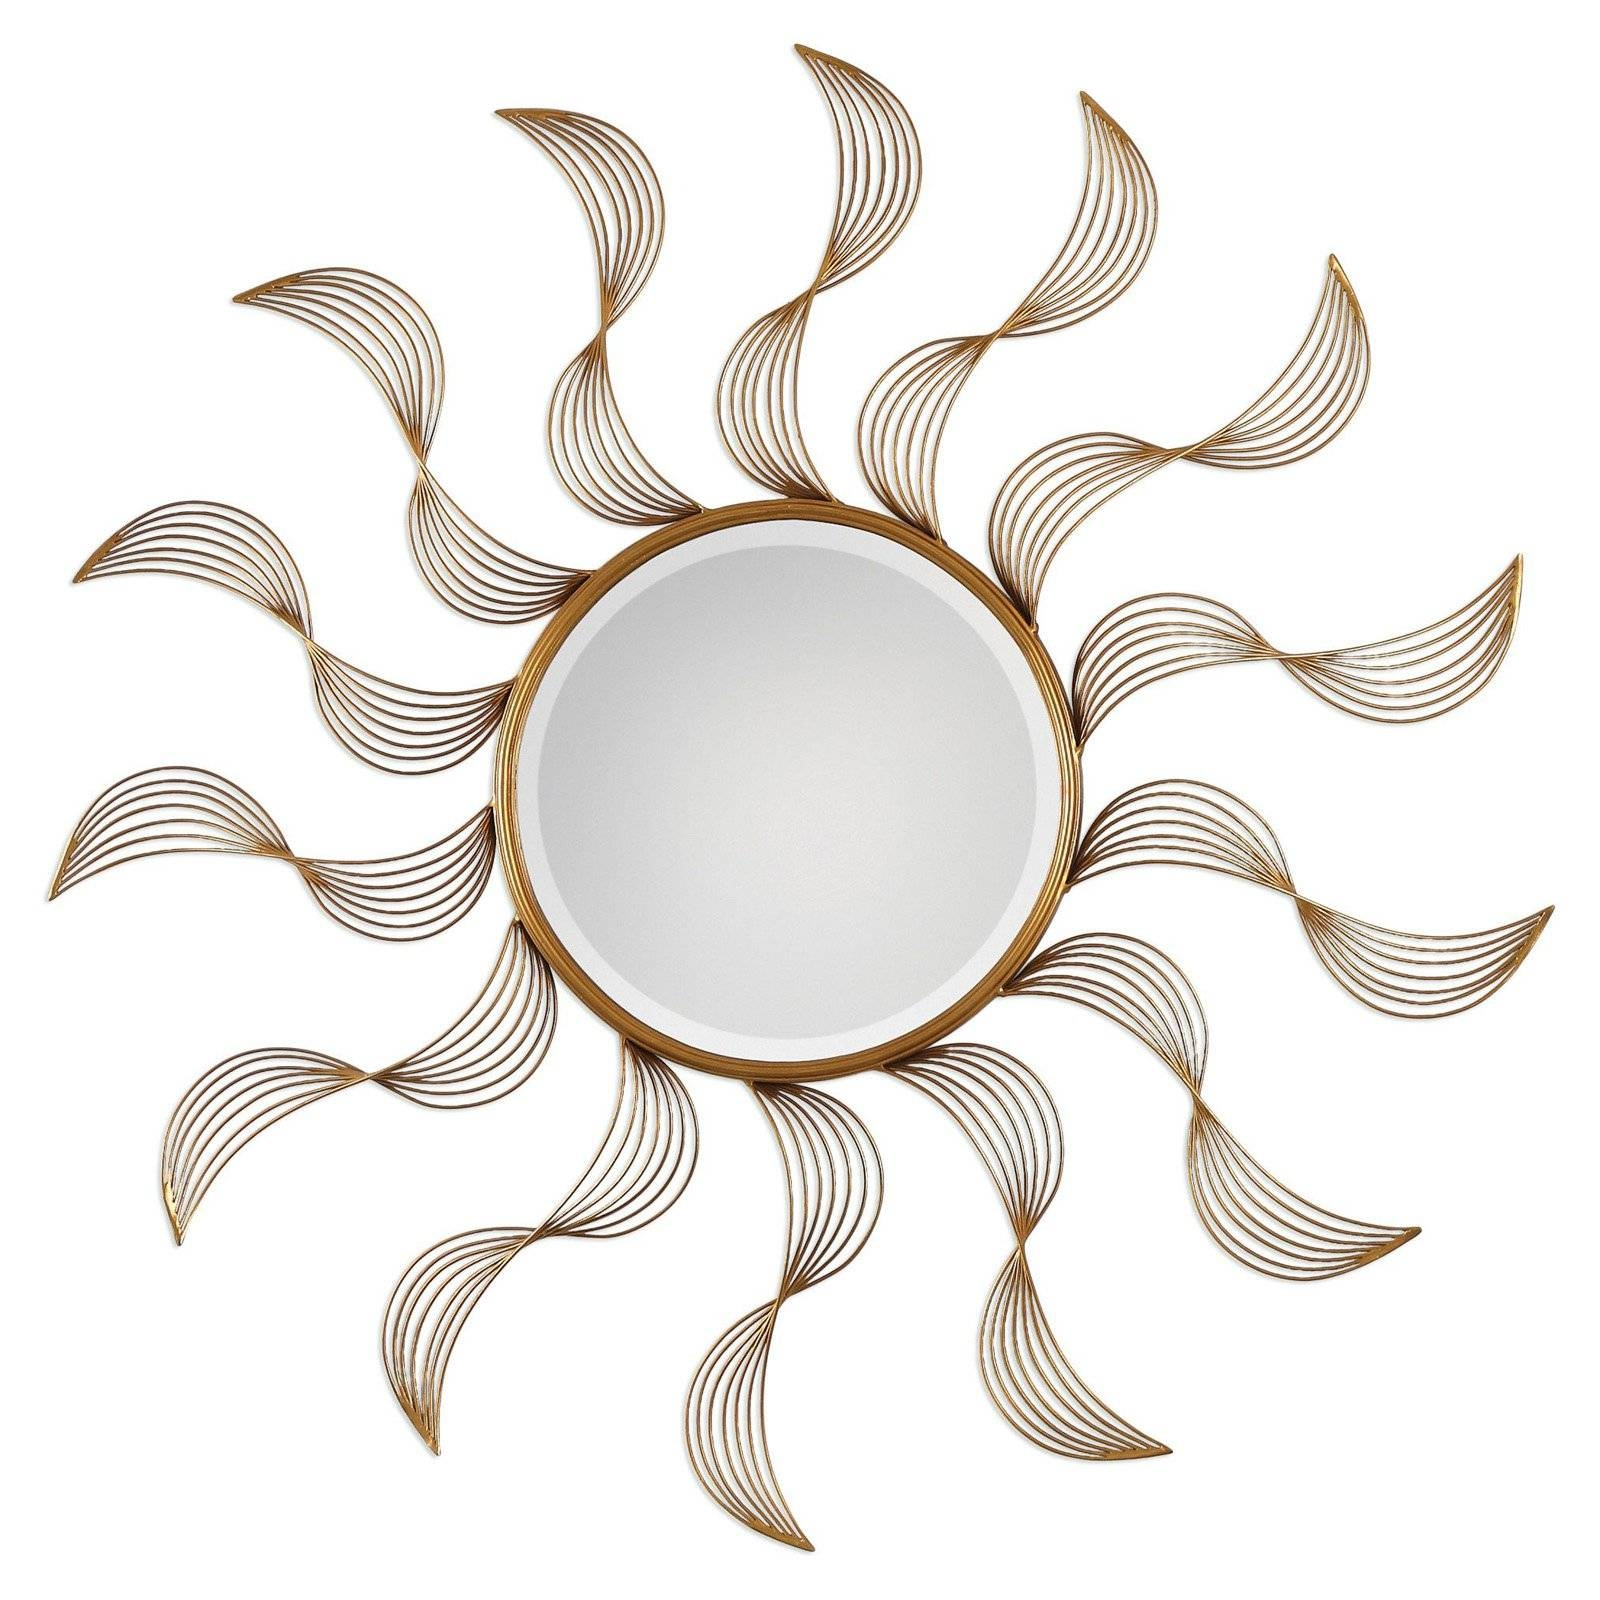 Uttermost Fortune Venetian Mirror - 34 Diam. In. | Hayneedle pertaining to Sun Mirrors (Image 24 of 25)